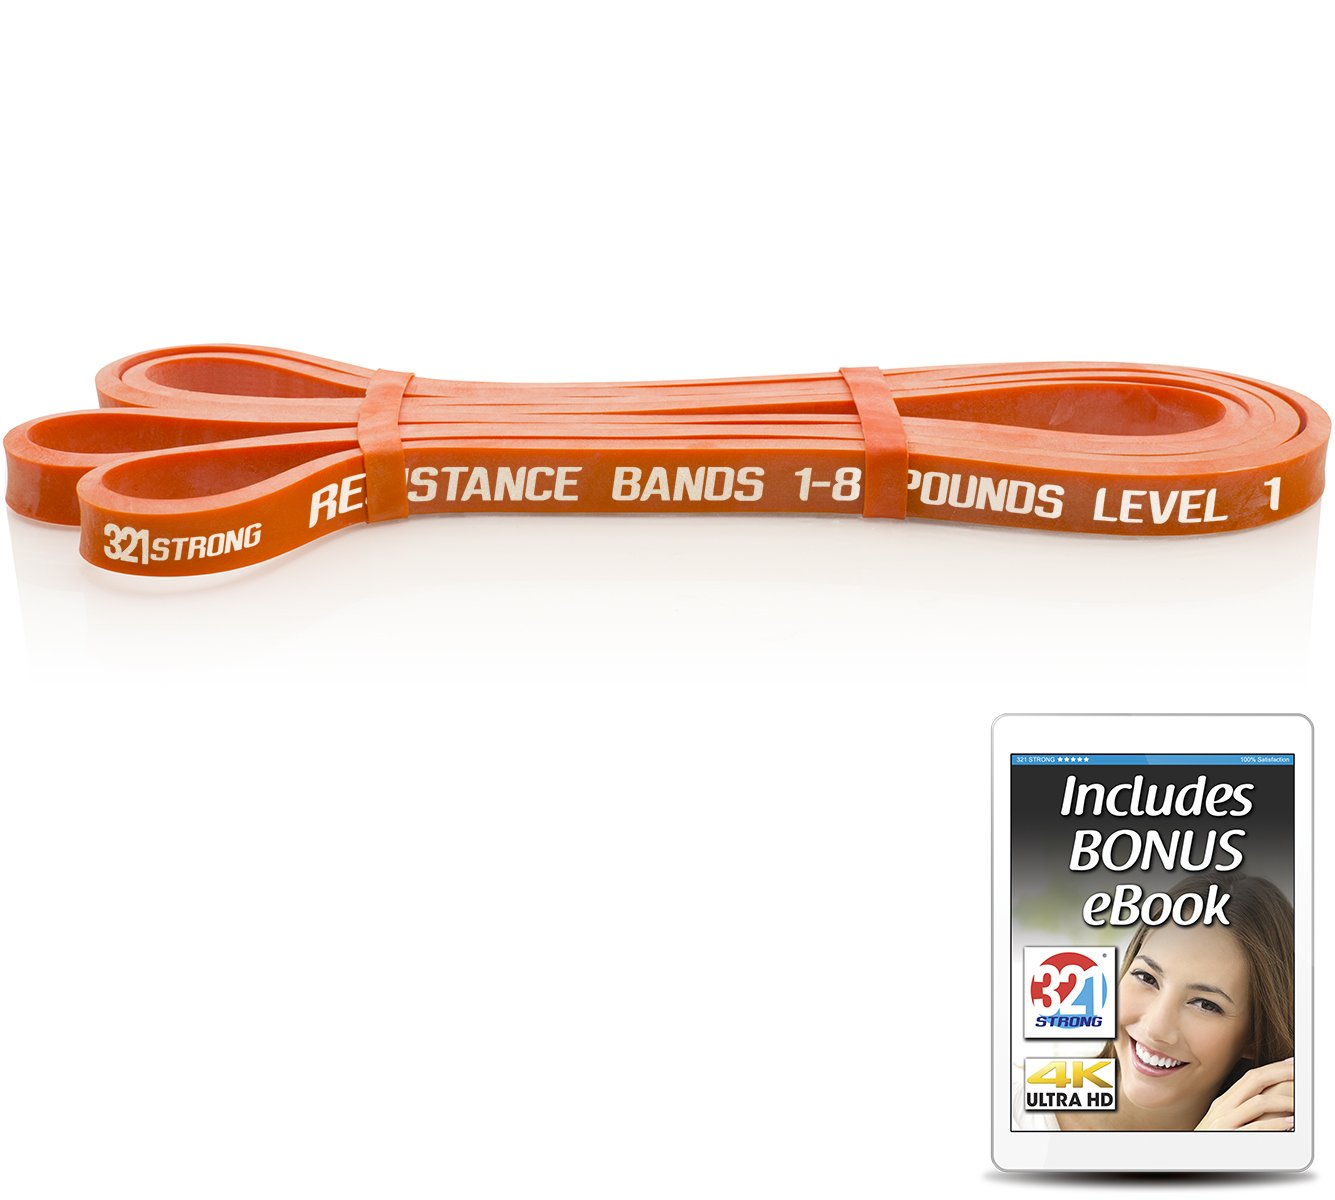 321 STRONG Exercise Resistance Bands - Level 1